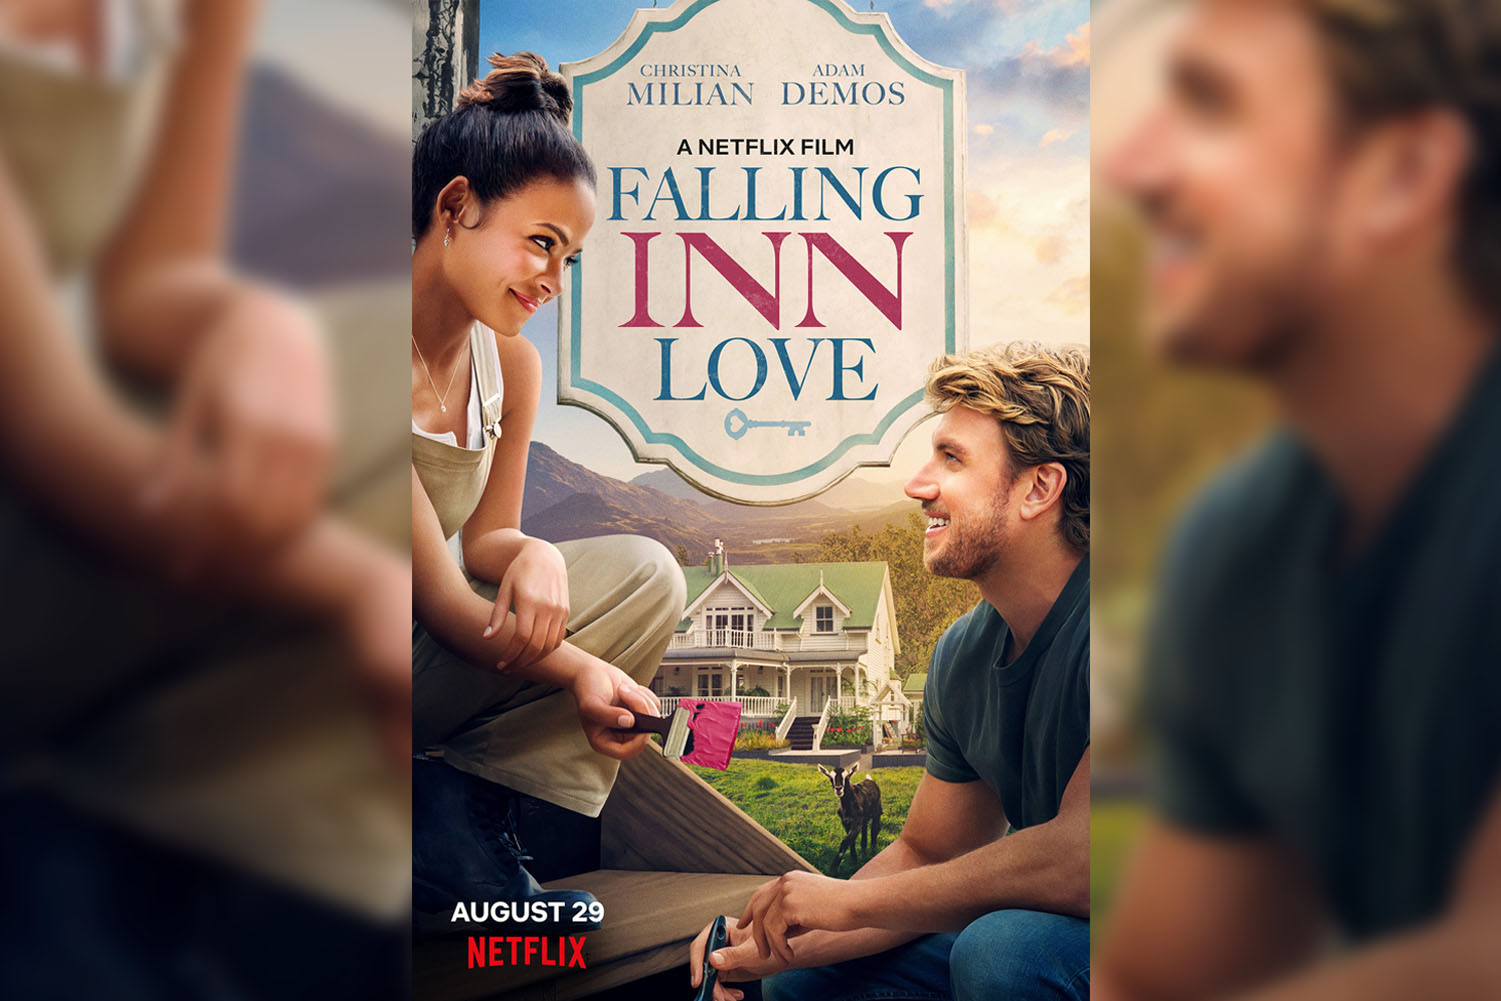 Falling Inn Love is a 2019 film directed by Roger Kumble.